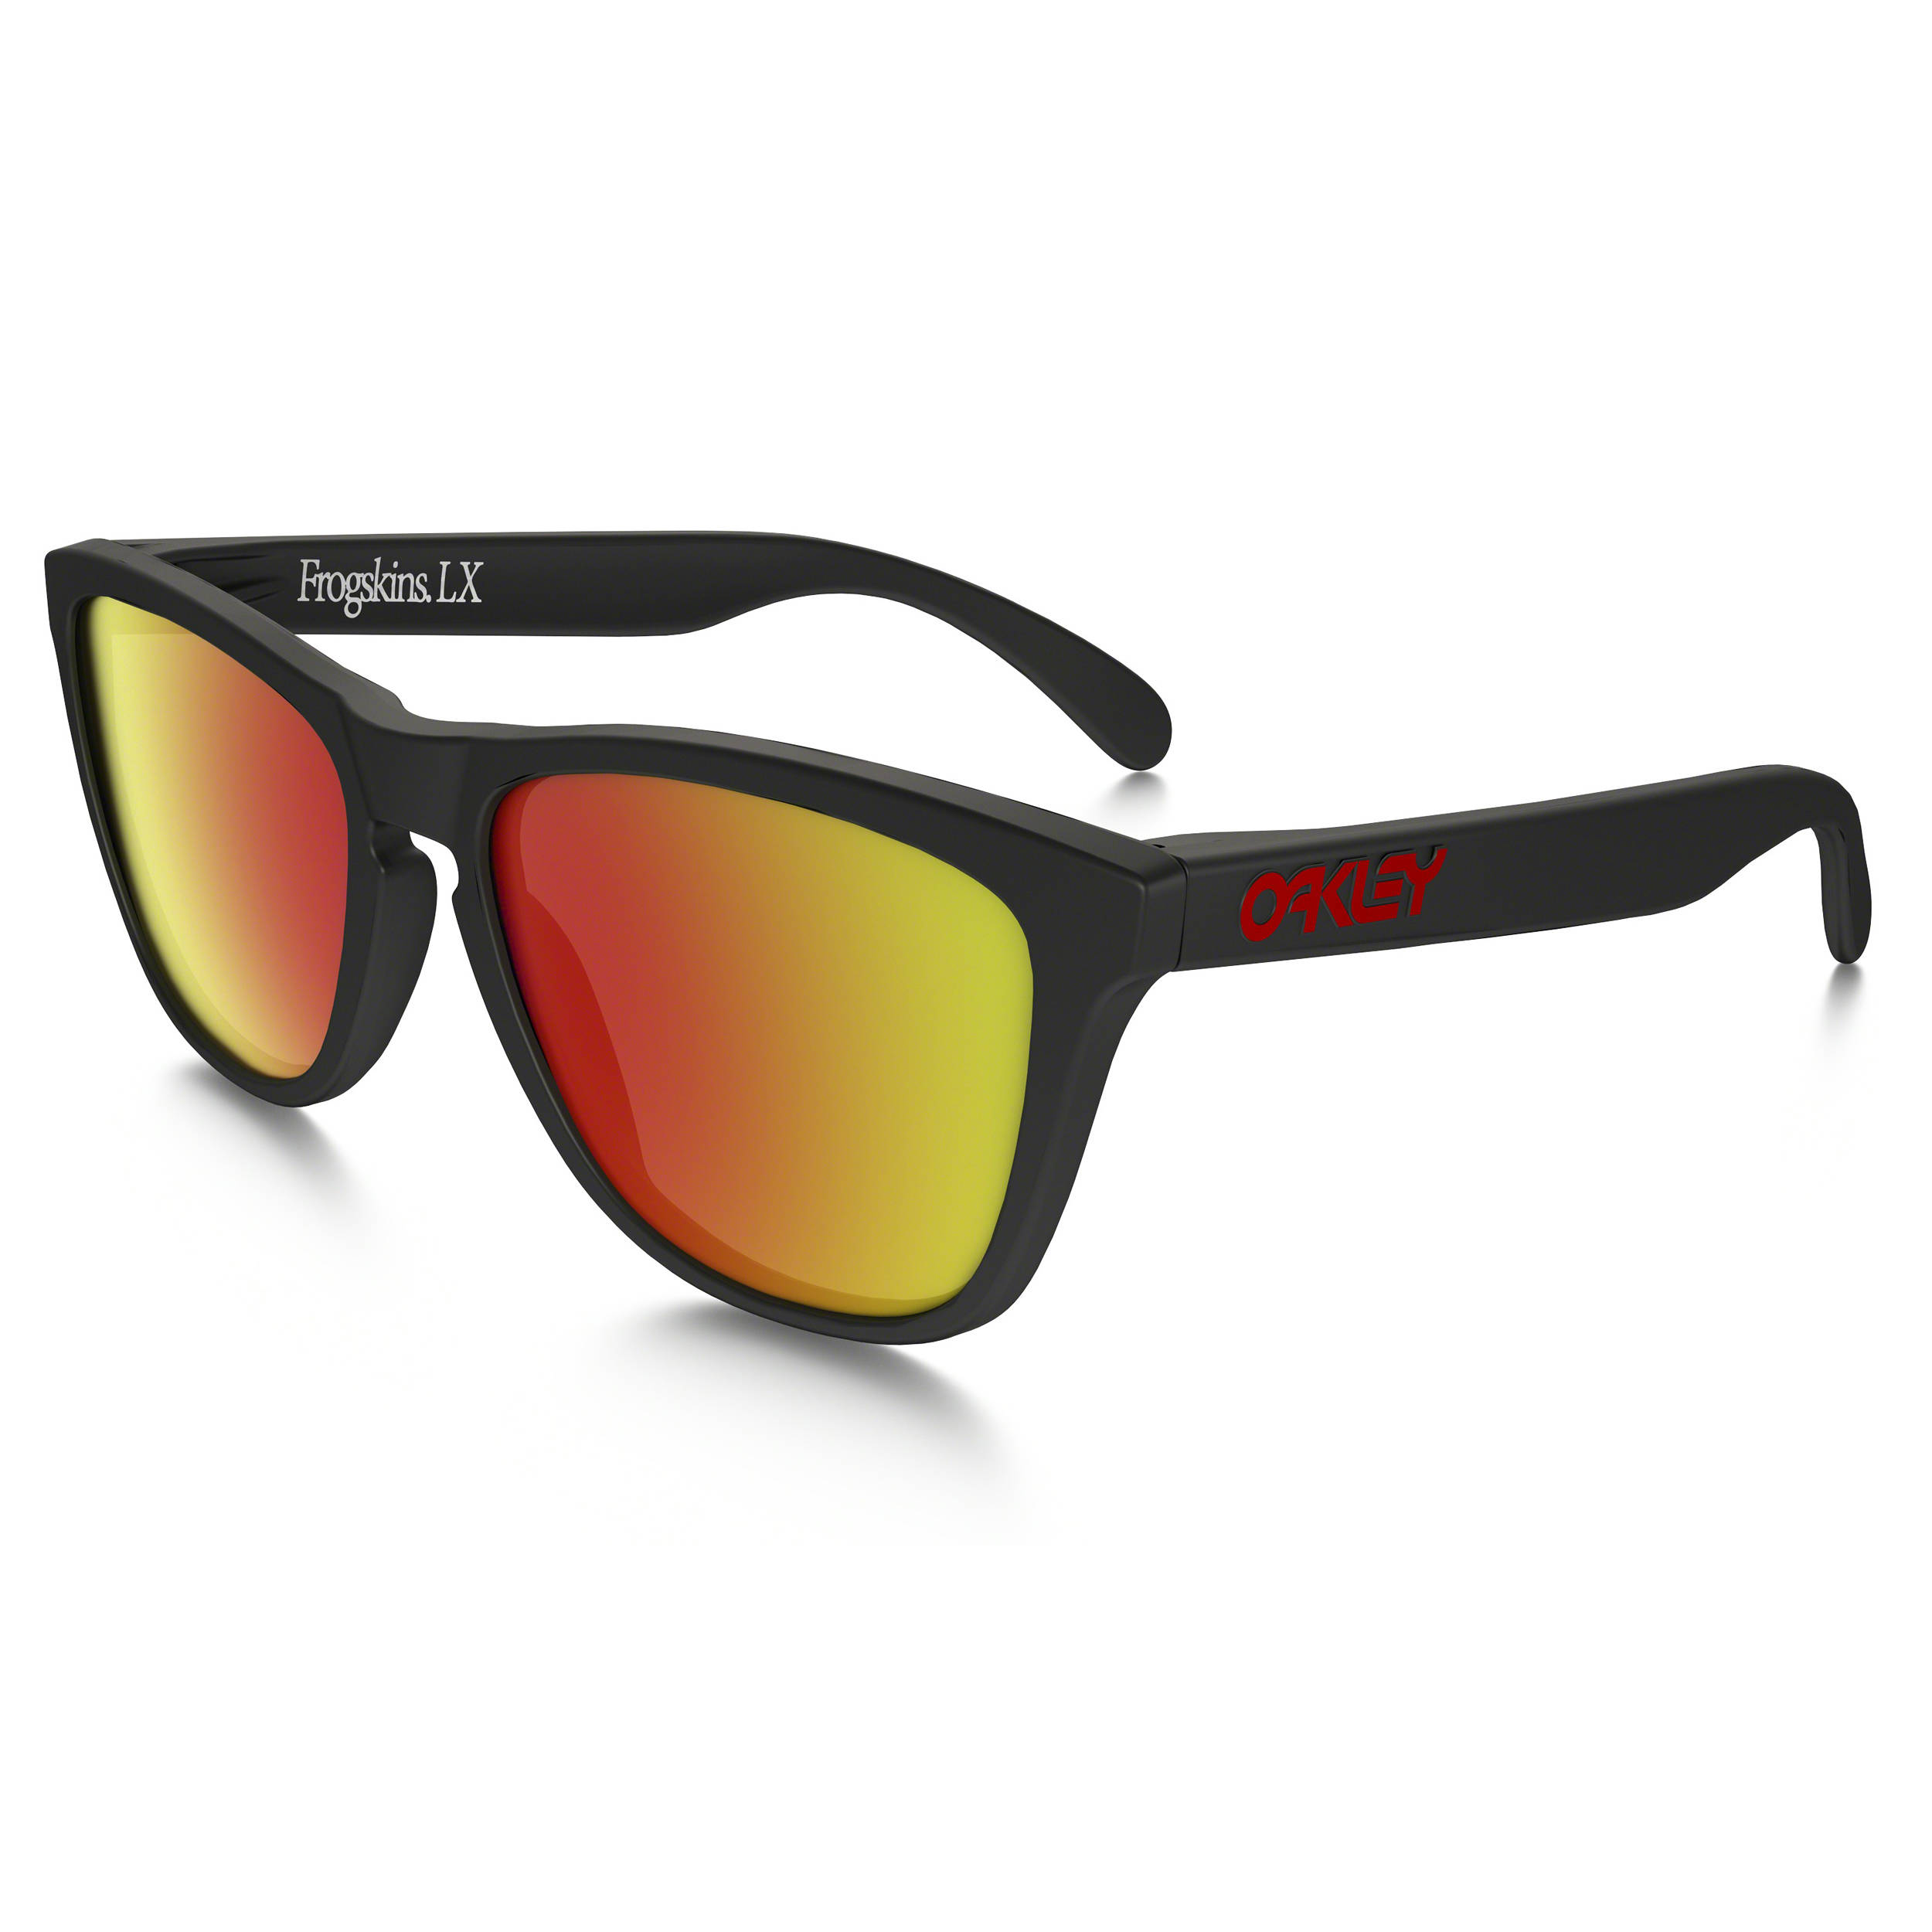 Oakley Global Frogskin OO 2043 12 1 9HbgSnrQ